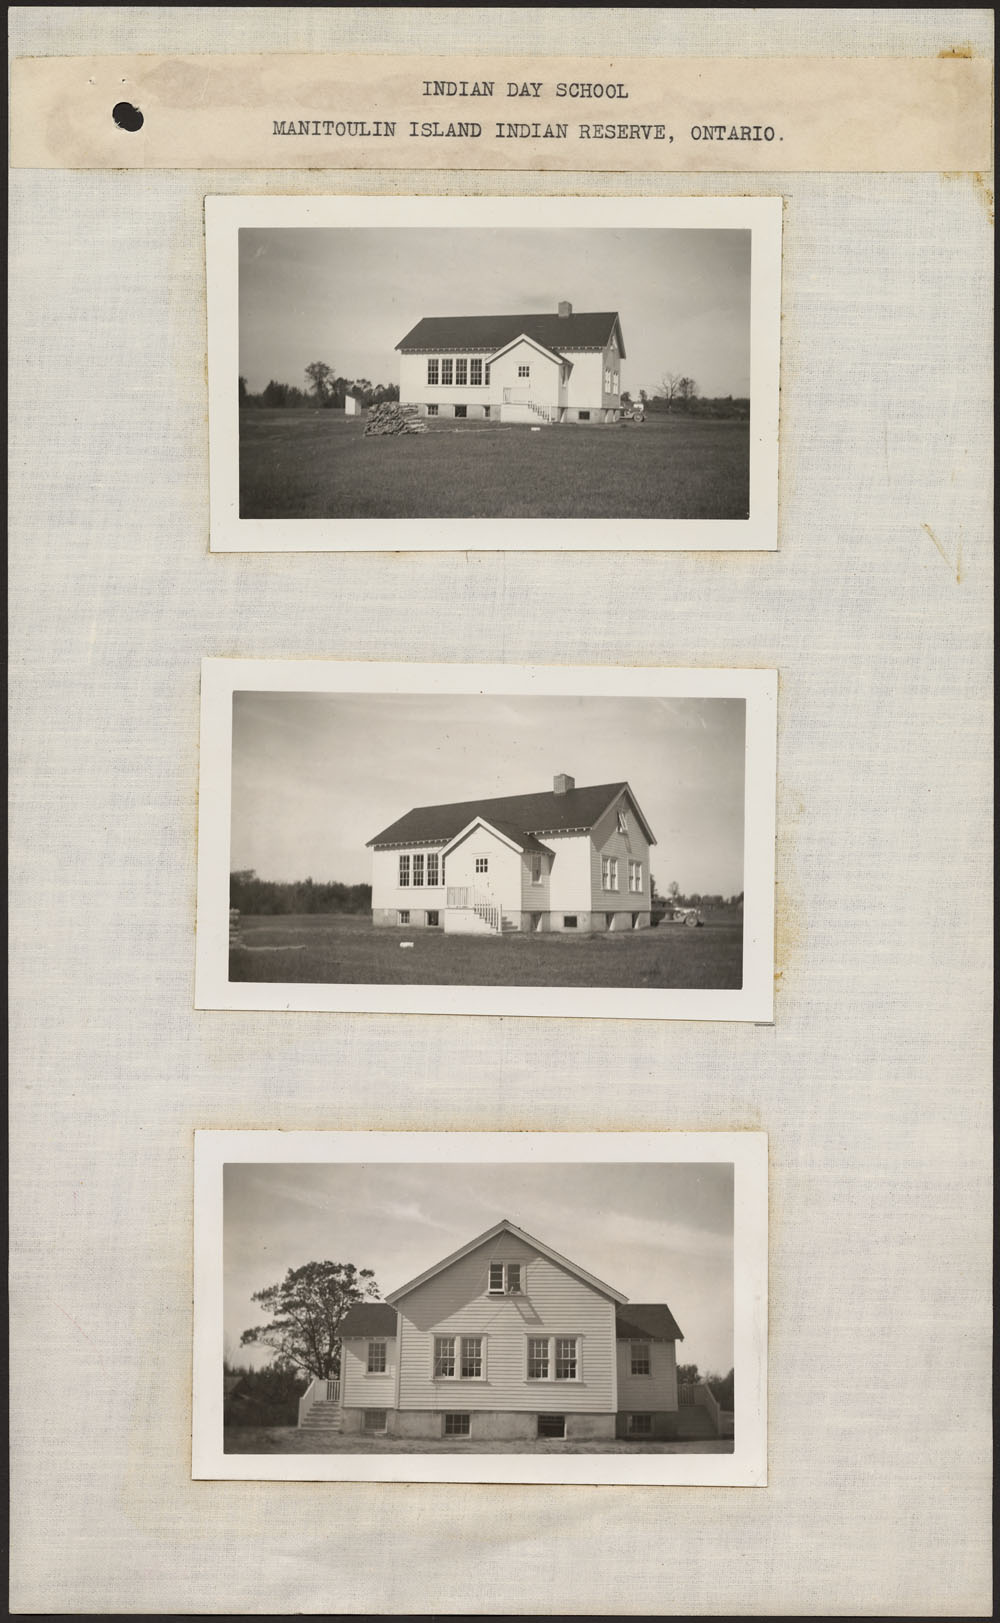 Indian Day School, three views of the school exterior, Manitoulin Island Indian Reserve, ca. summer 1938